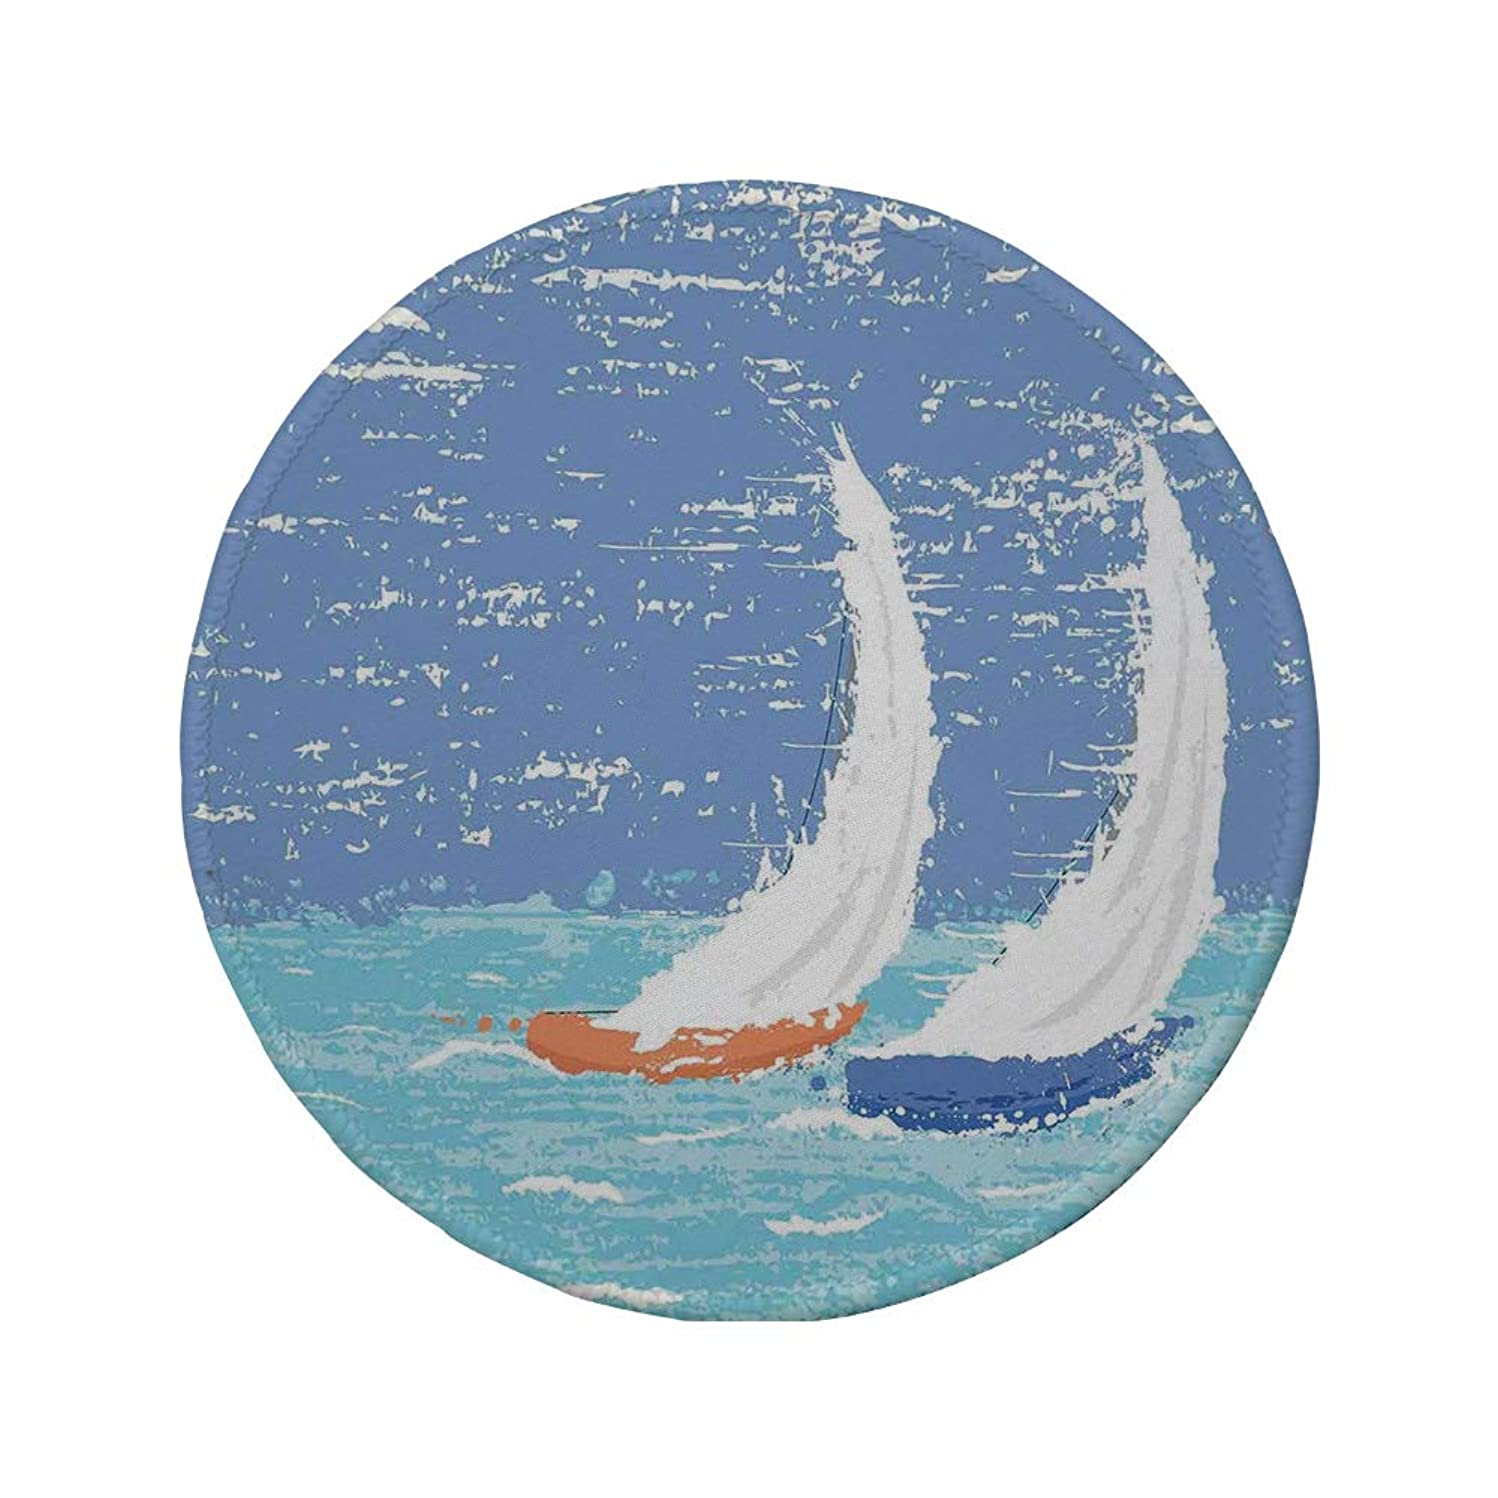 Non-Slip Rubber Round Mouse Pad,Sailboat Nautical Decor,Grunge Style Illustration of Two Racing Sailboats in A Windy Ocean Water Print,Light Blue,7.87